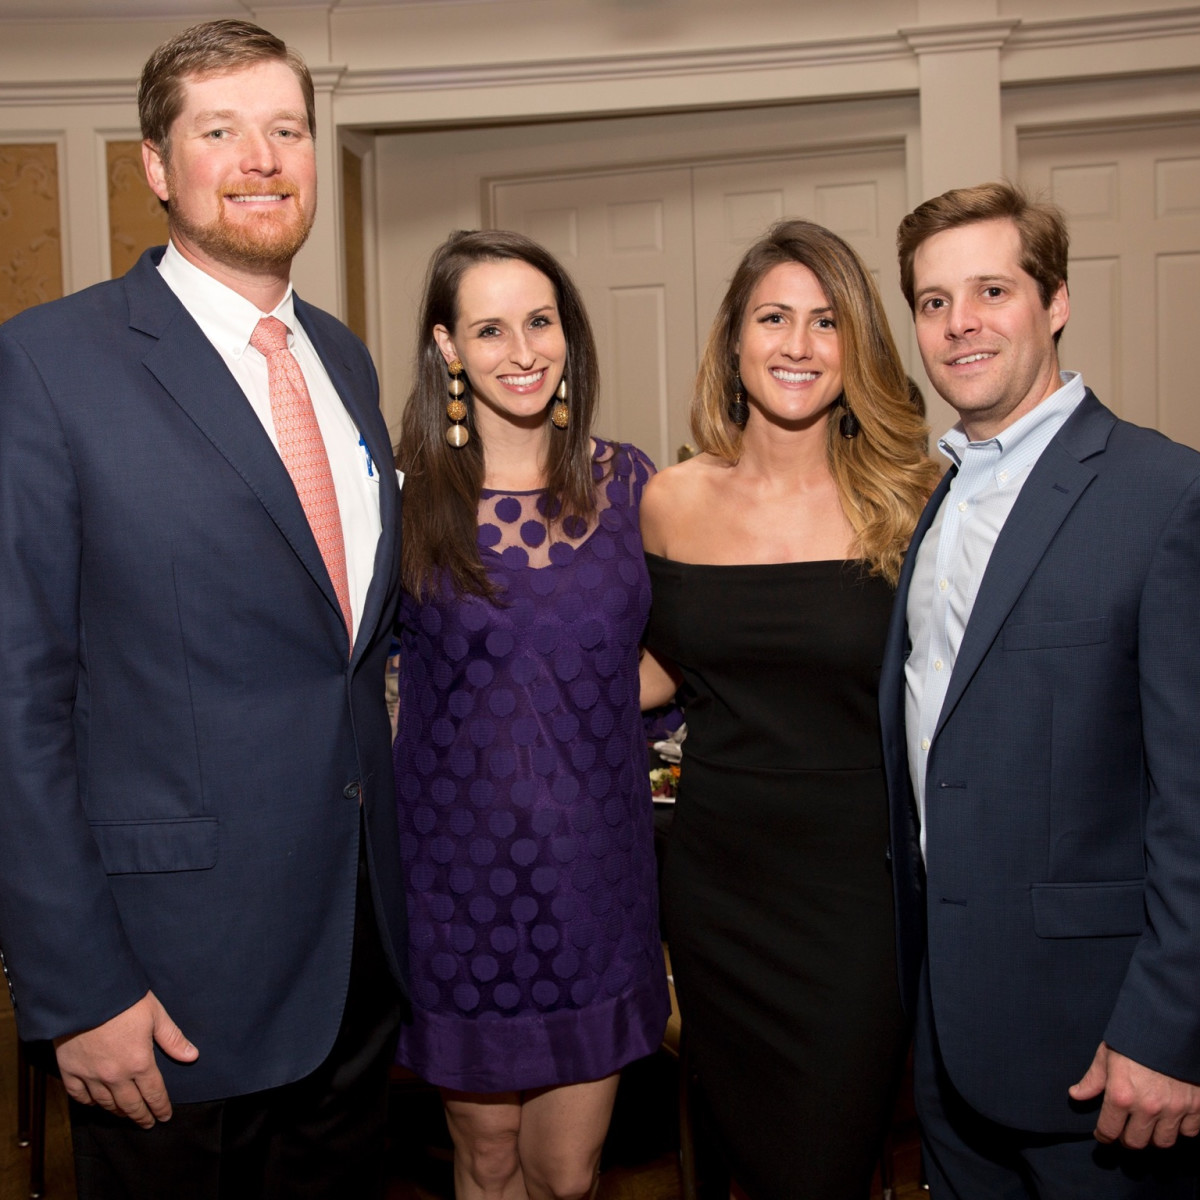 Allyson Kuper, Collins Kuper, Lexie Waterman, Todd Burgamy at Chinquapin Flashback 75 Gala